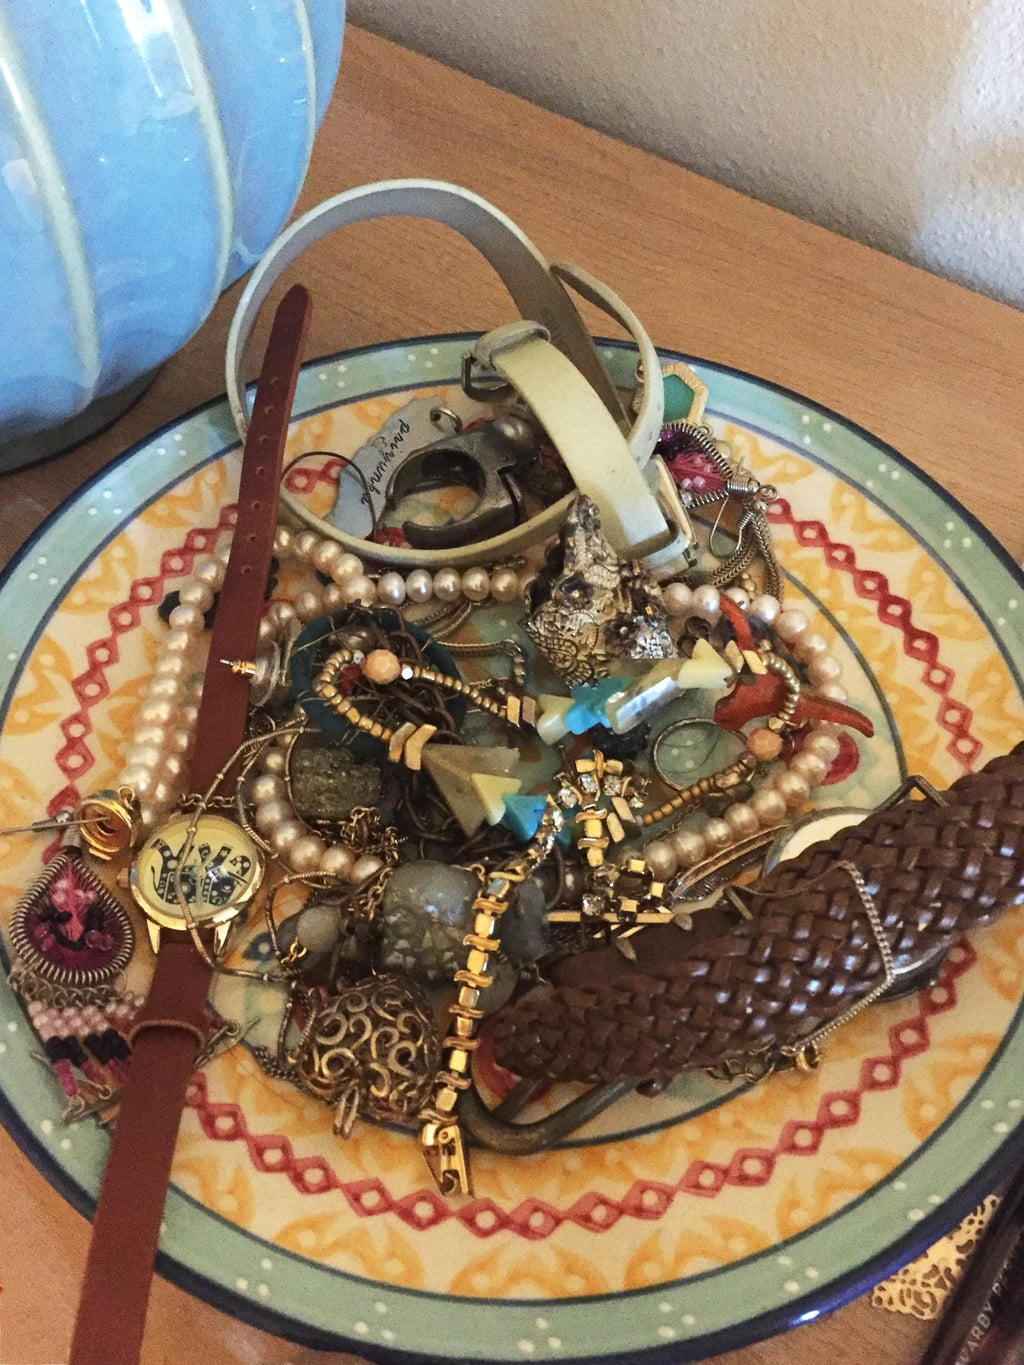 Catchall bowl/plate used to hold jewelry in an apartment